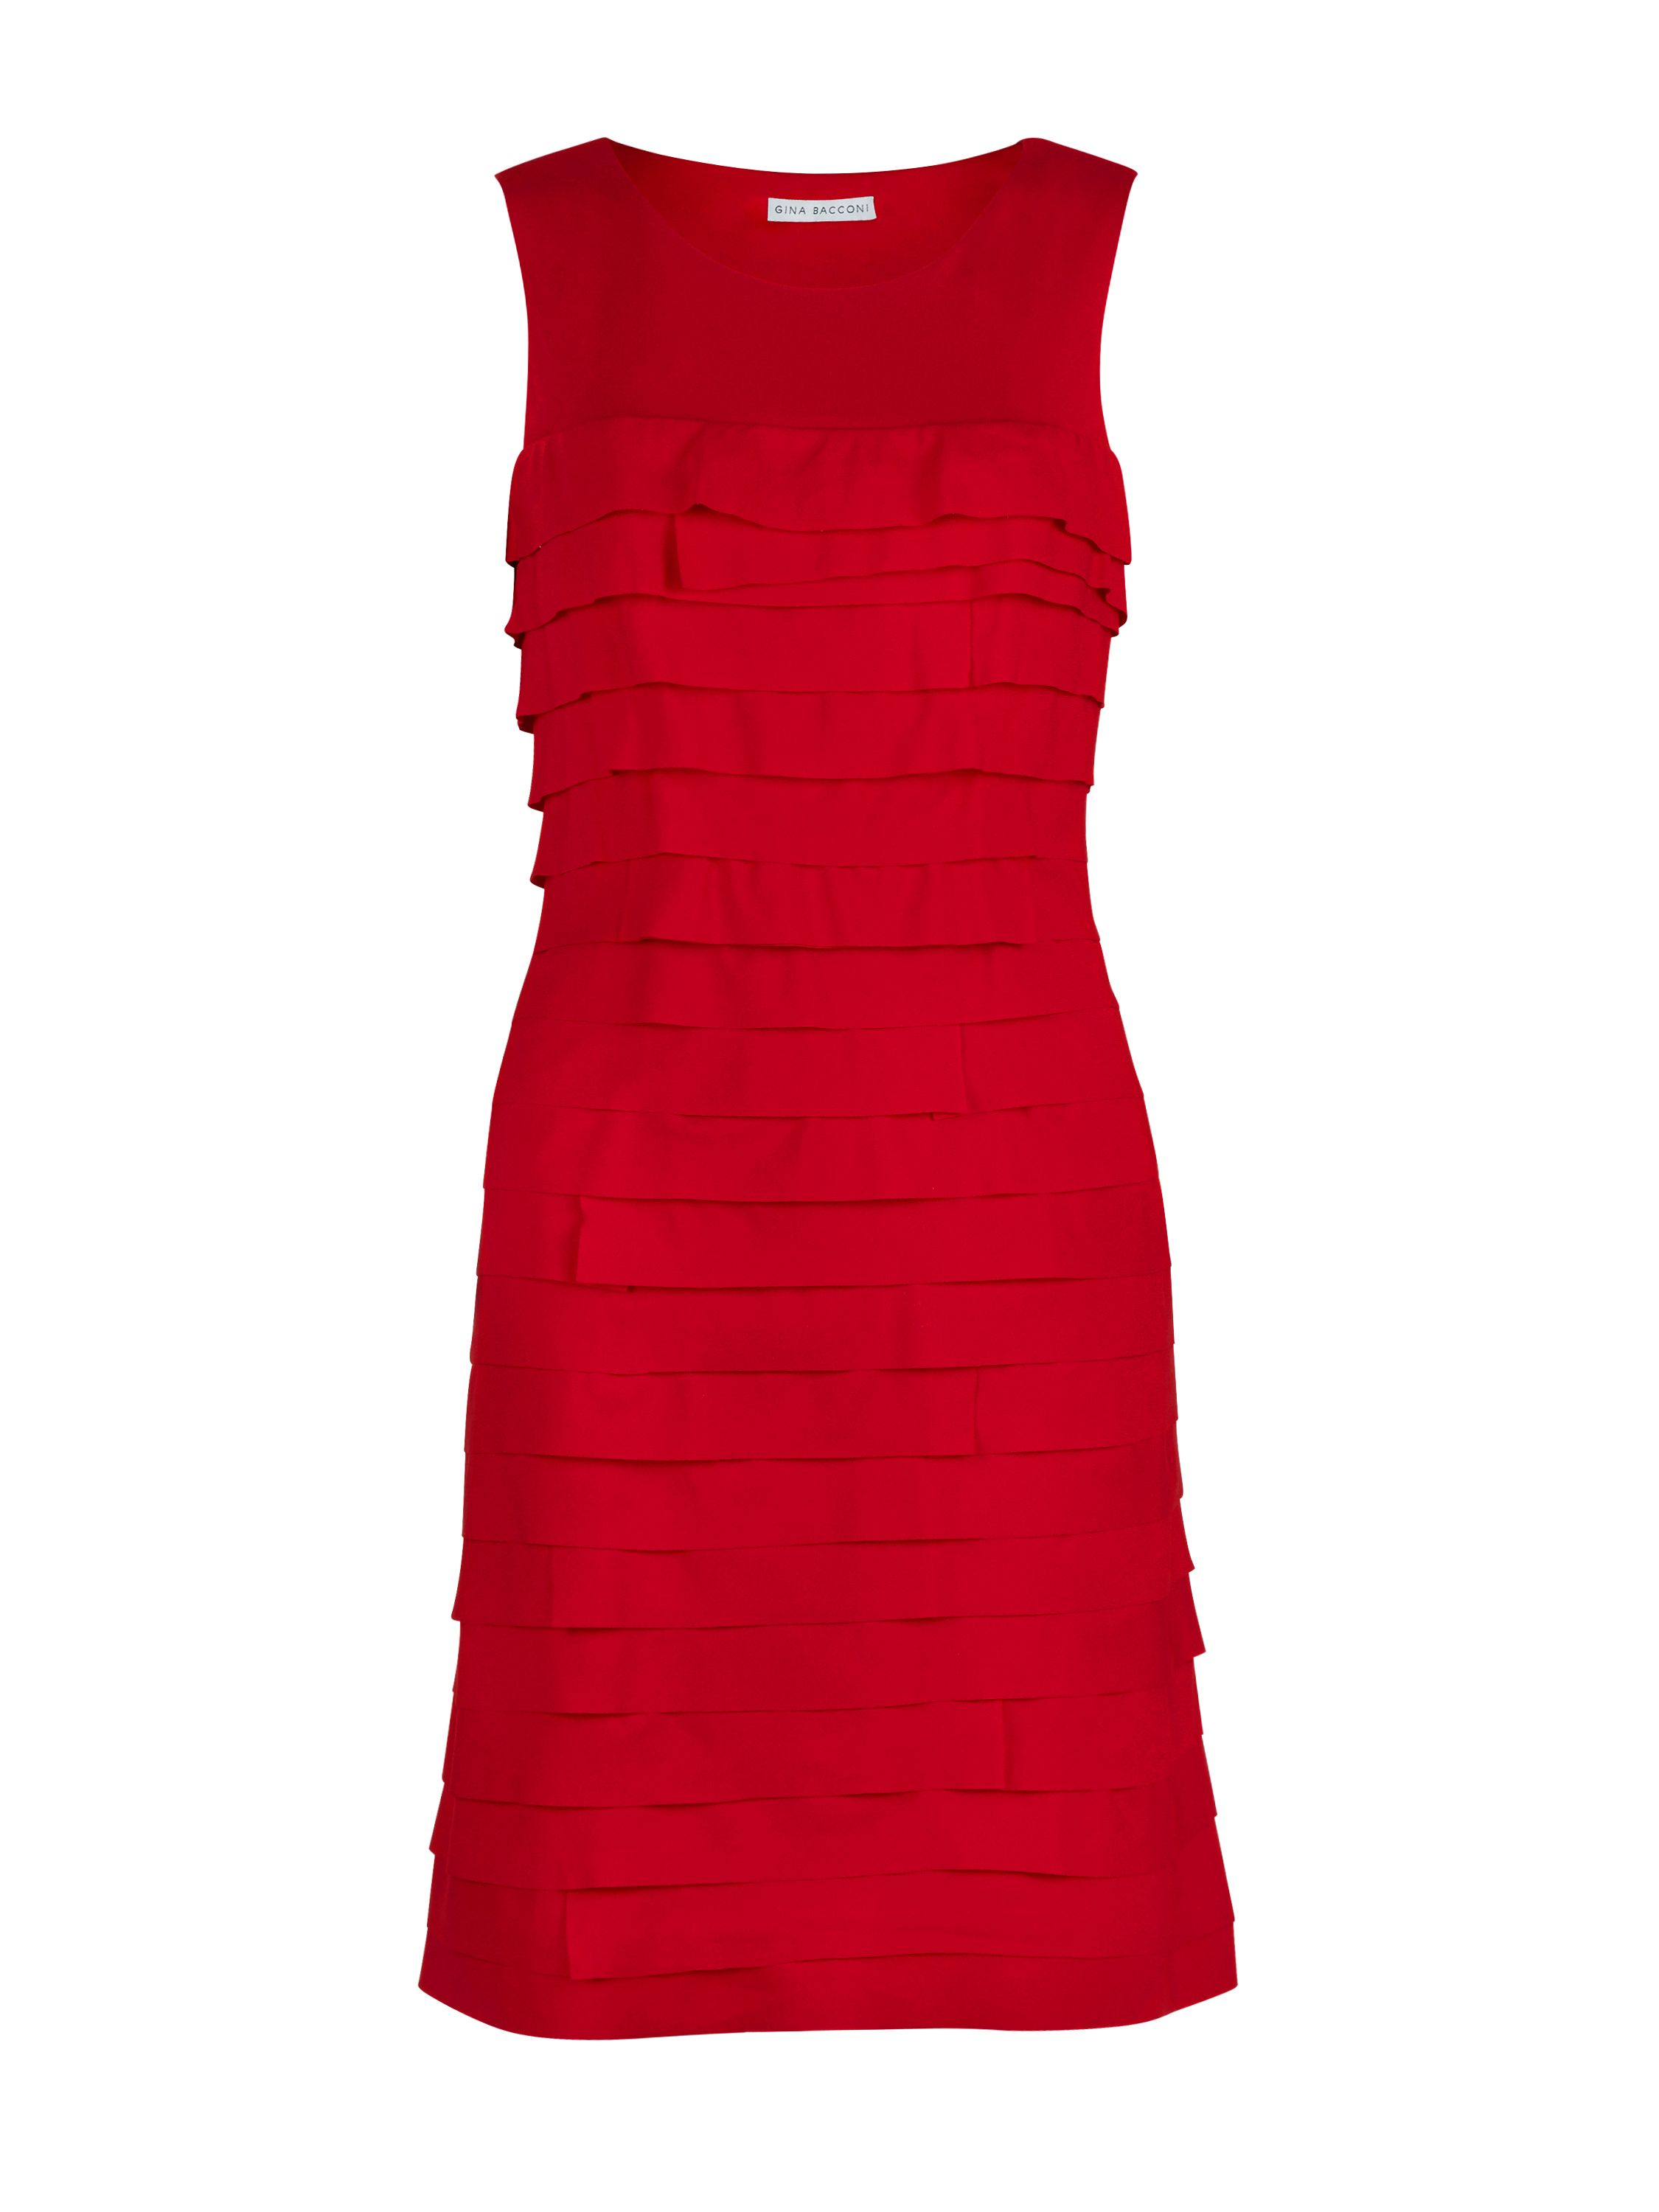 Gina Bacconi Crepe De Chine Layered Dress, Red